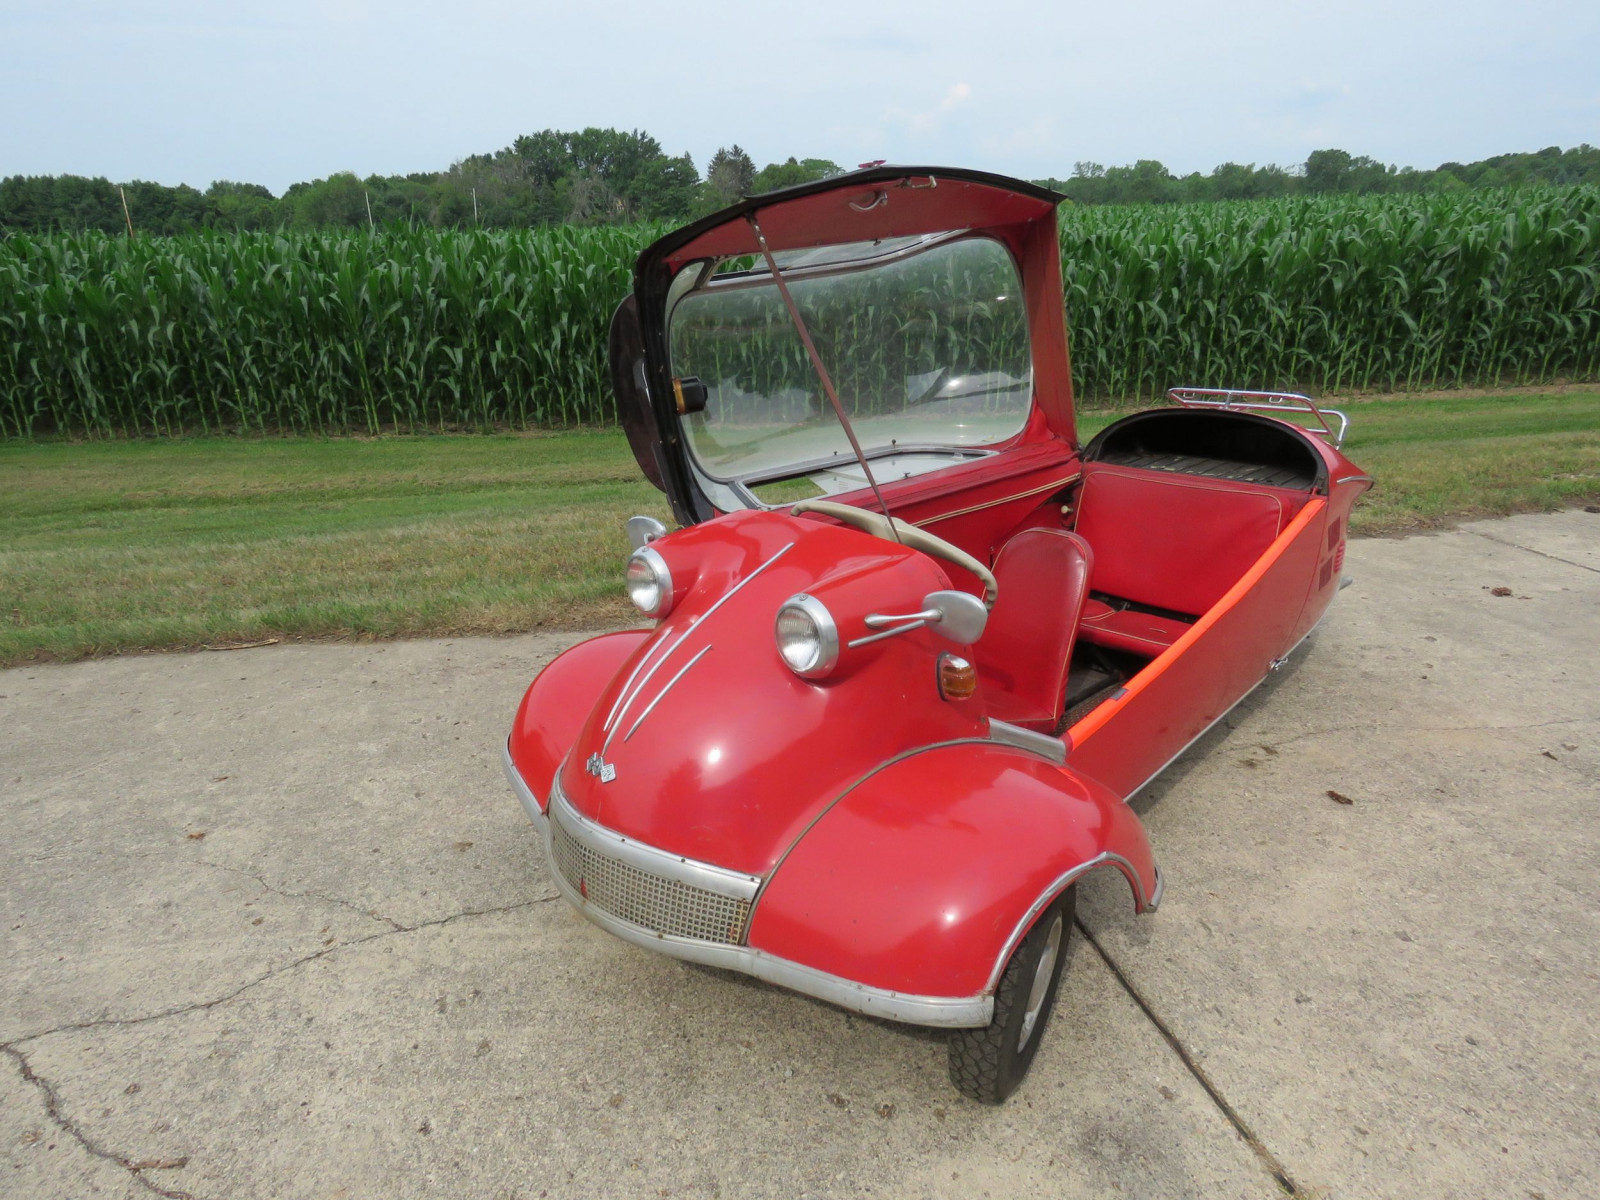 1959 Messerschmitt      KR-200 BubbleTop Coupe - Image 13